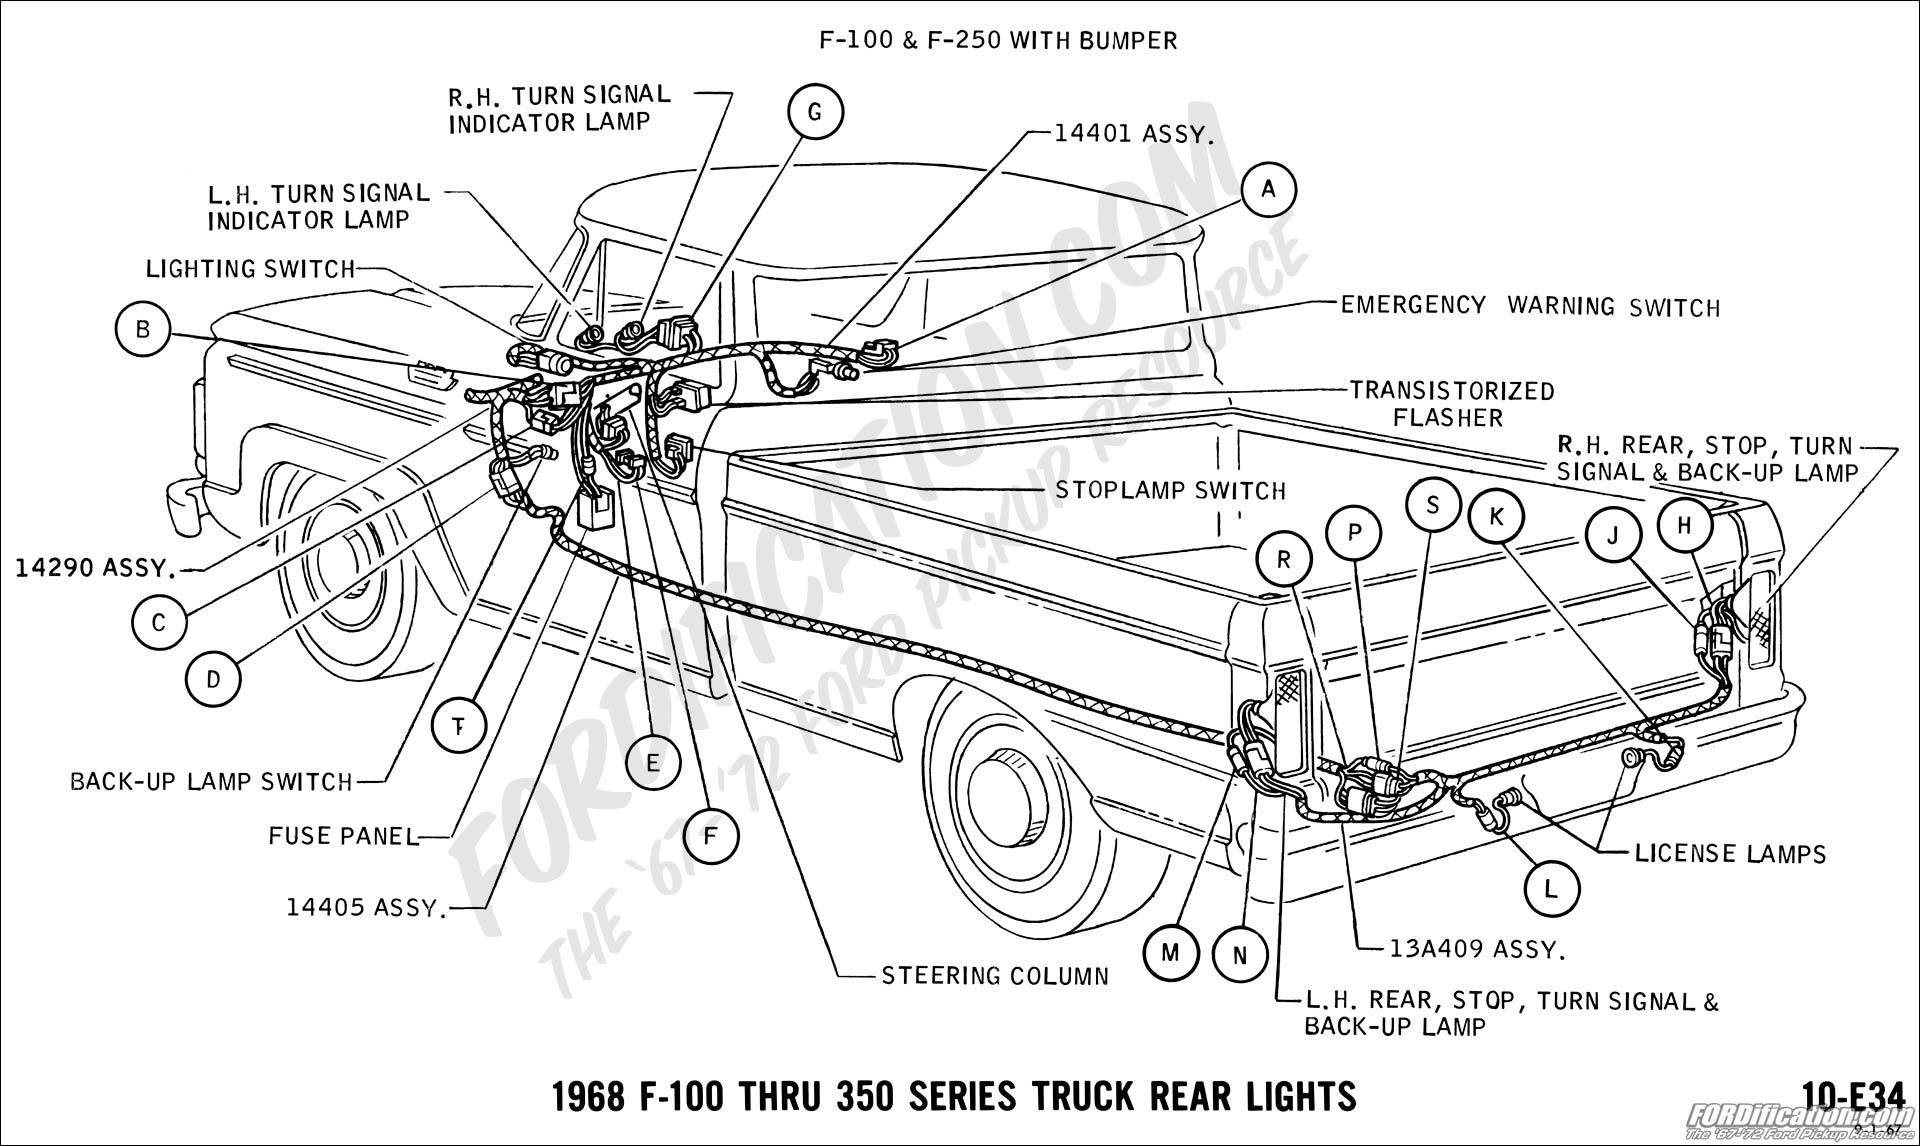 Ford Ranger Parts Diagram ford Truck Technical Drawings and Schematics Section H Wiring Of Ford Ranger Parts Diagram